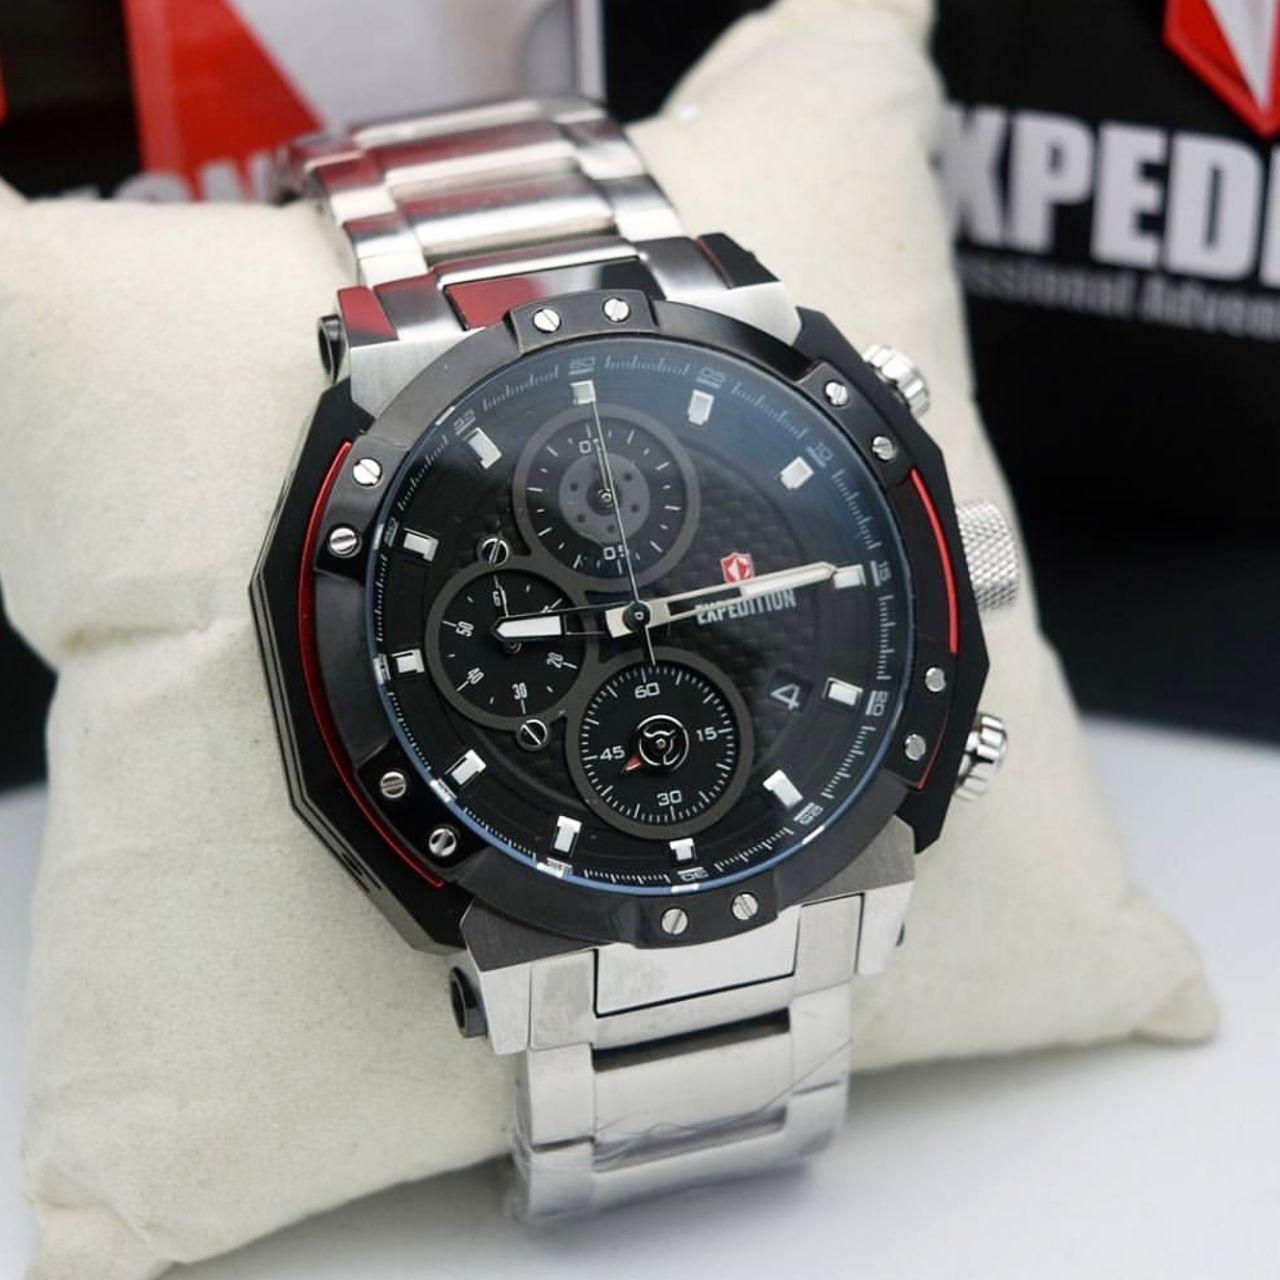 Jam Tangan Expedition Terbaru Pria E6715 Original Limited Edition E6385 Stainless Steel Silver Hitam